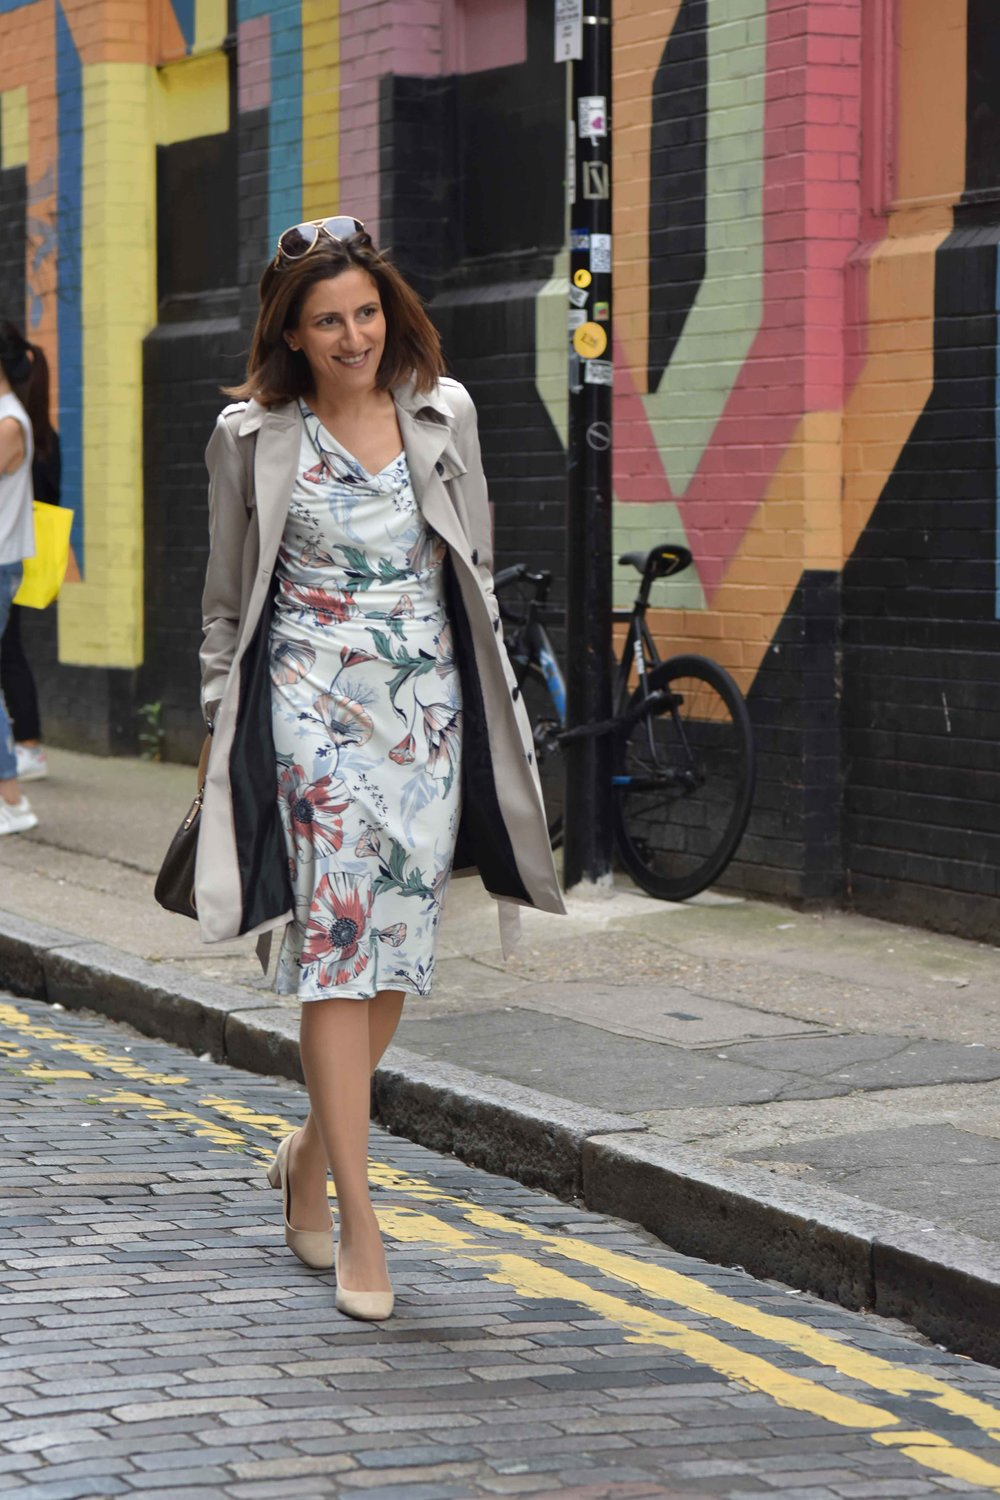 Marks and Spencer shift dress, Marks and Spencer trench, Zara sandals, Gucci sunglasses, street fashion, street art, Shoreditch, London, U.K. Photo: Nina Shaw, Image©sourcingstyle.com